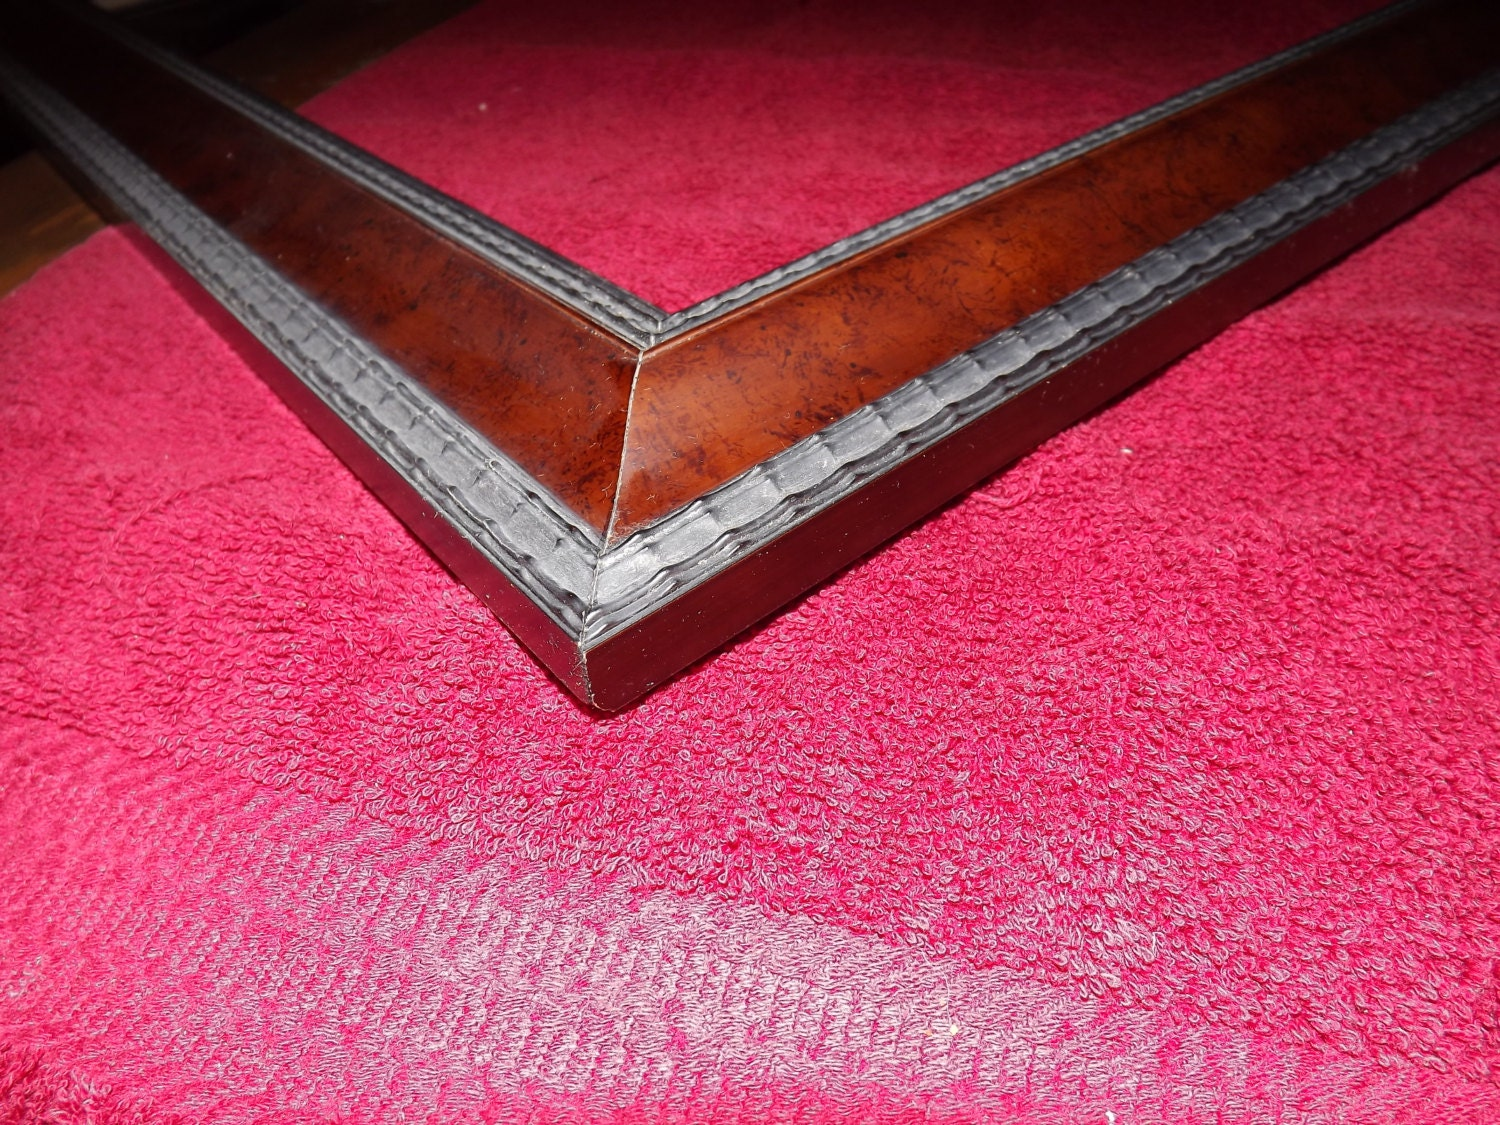 14 x 18 Ready to Ship Picture Frame Larson Juhl Moulding